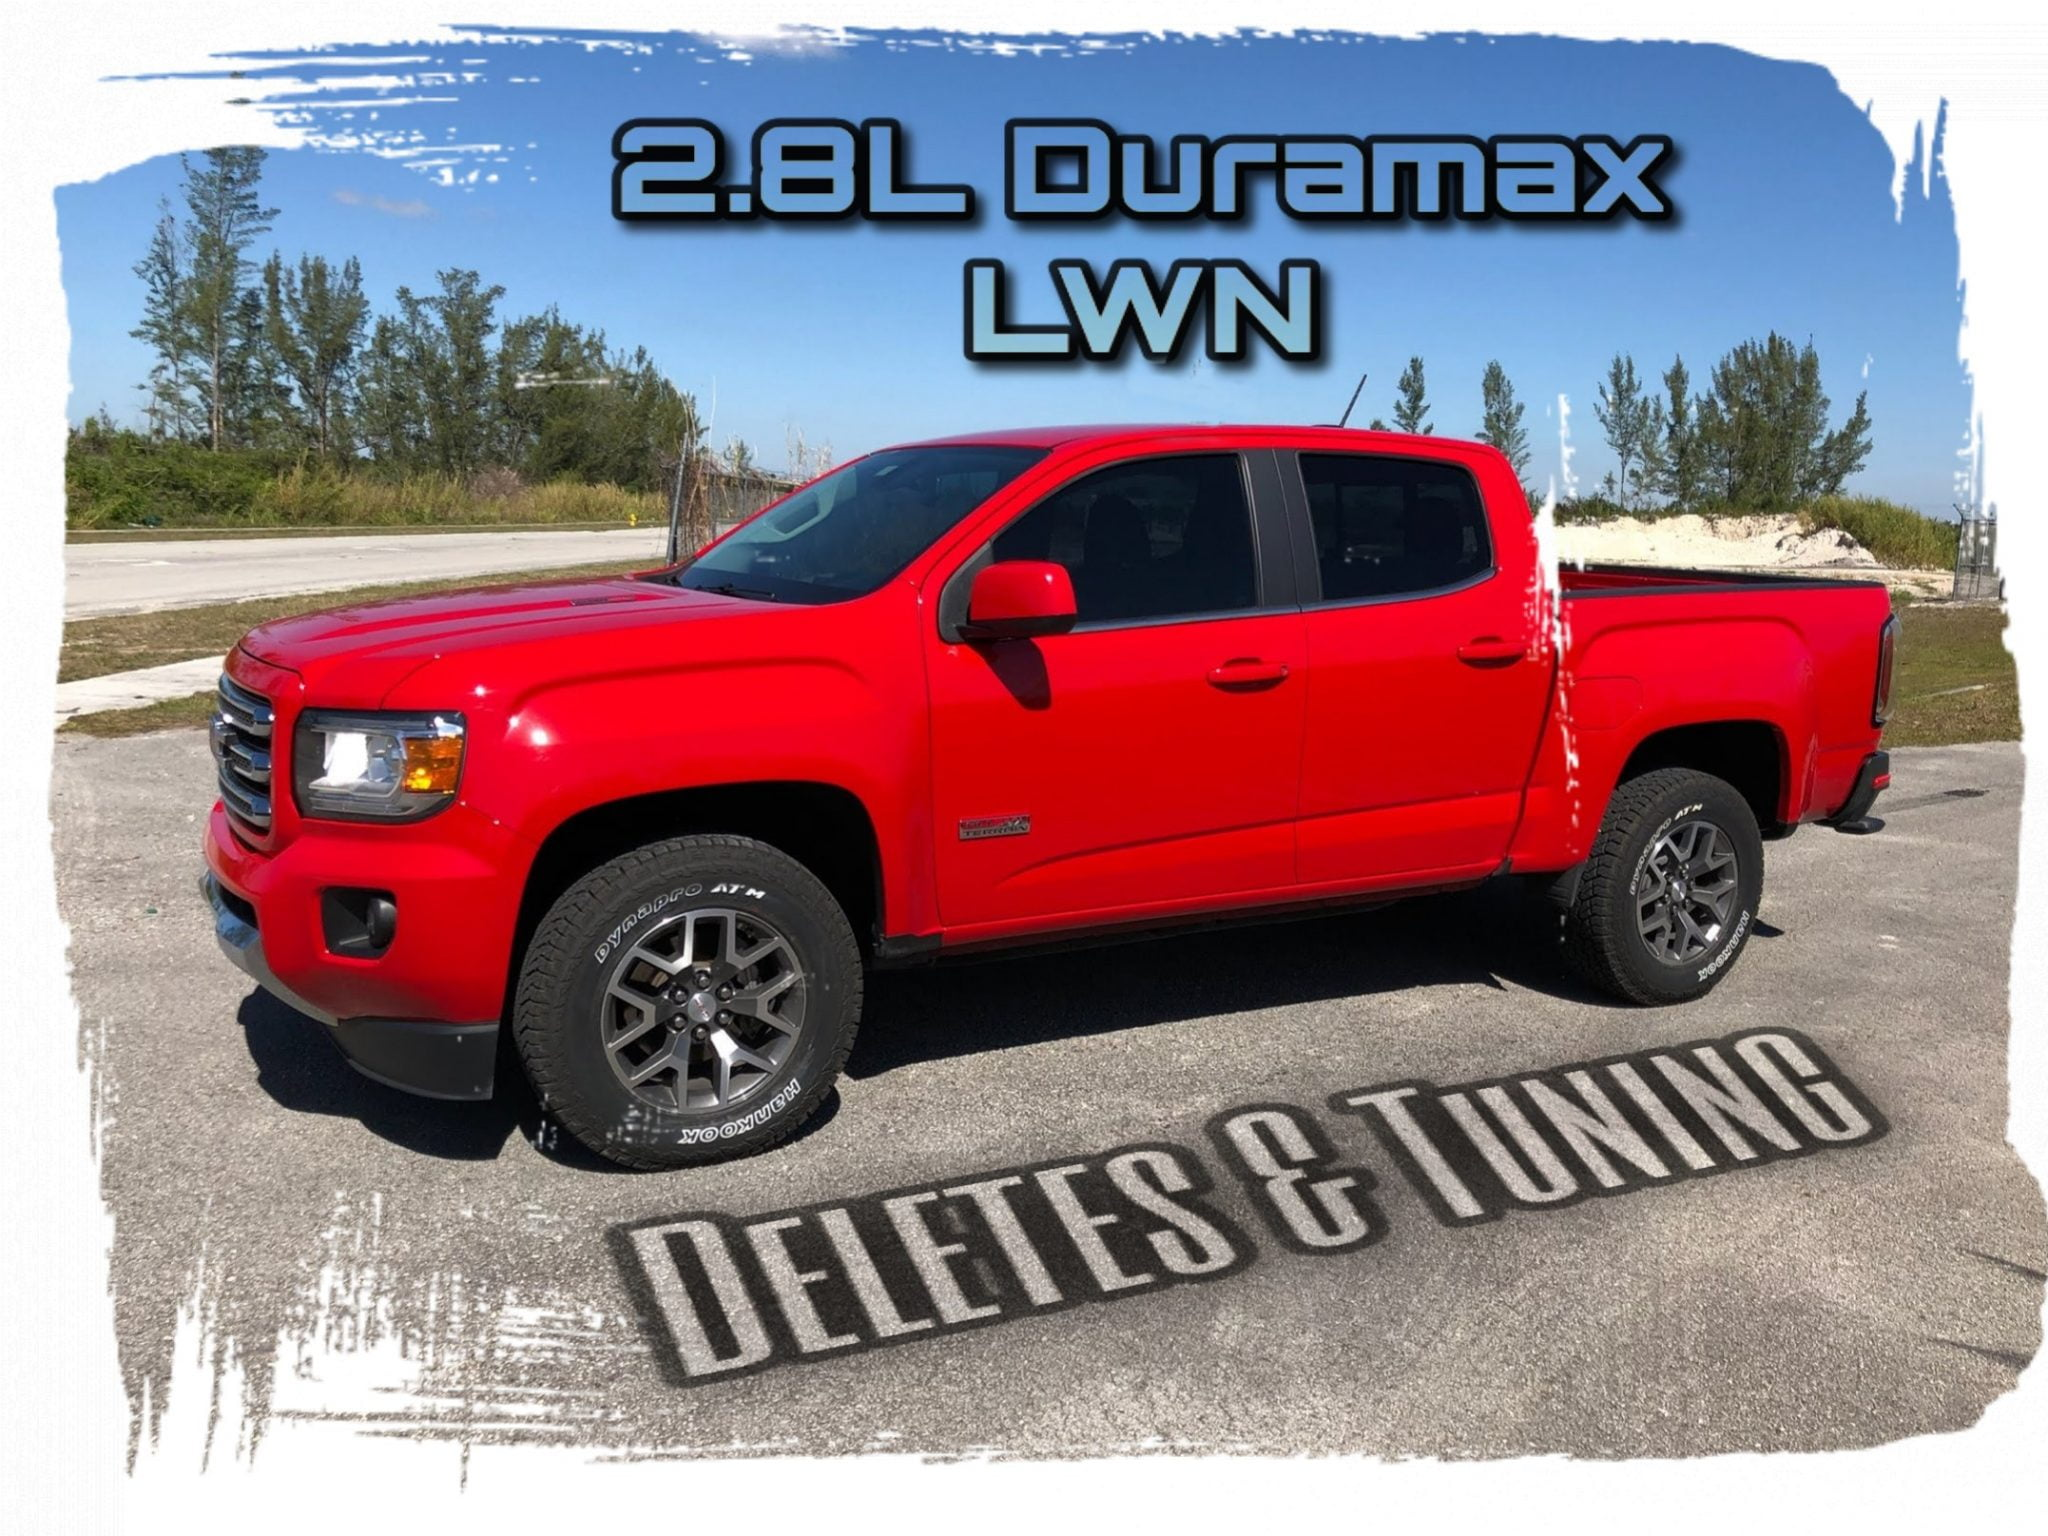 Deleting and tuning the 2 8L Duramax LWN | Remove DPF, DEF and EGR